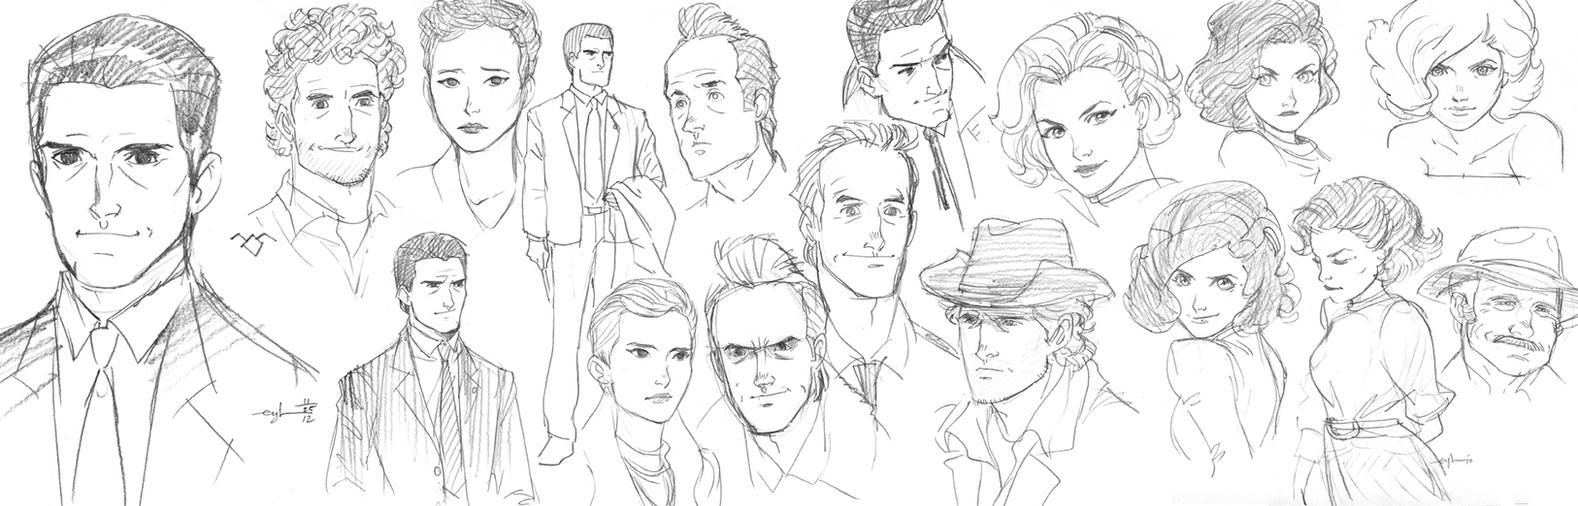 Twin Peaks sketches by Gingashi